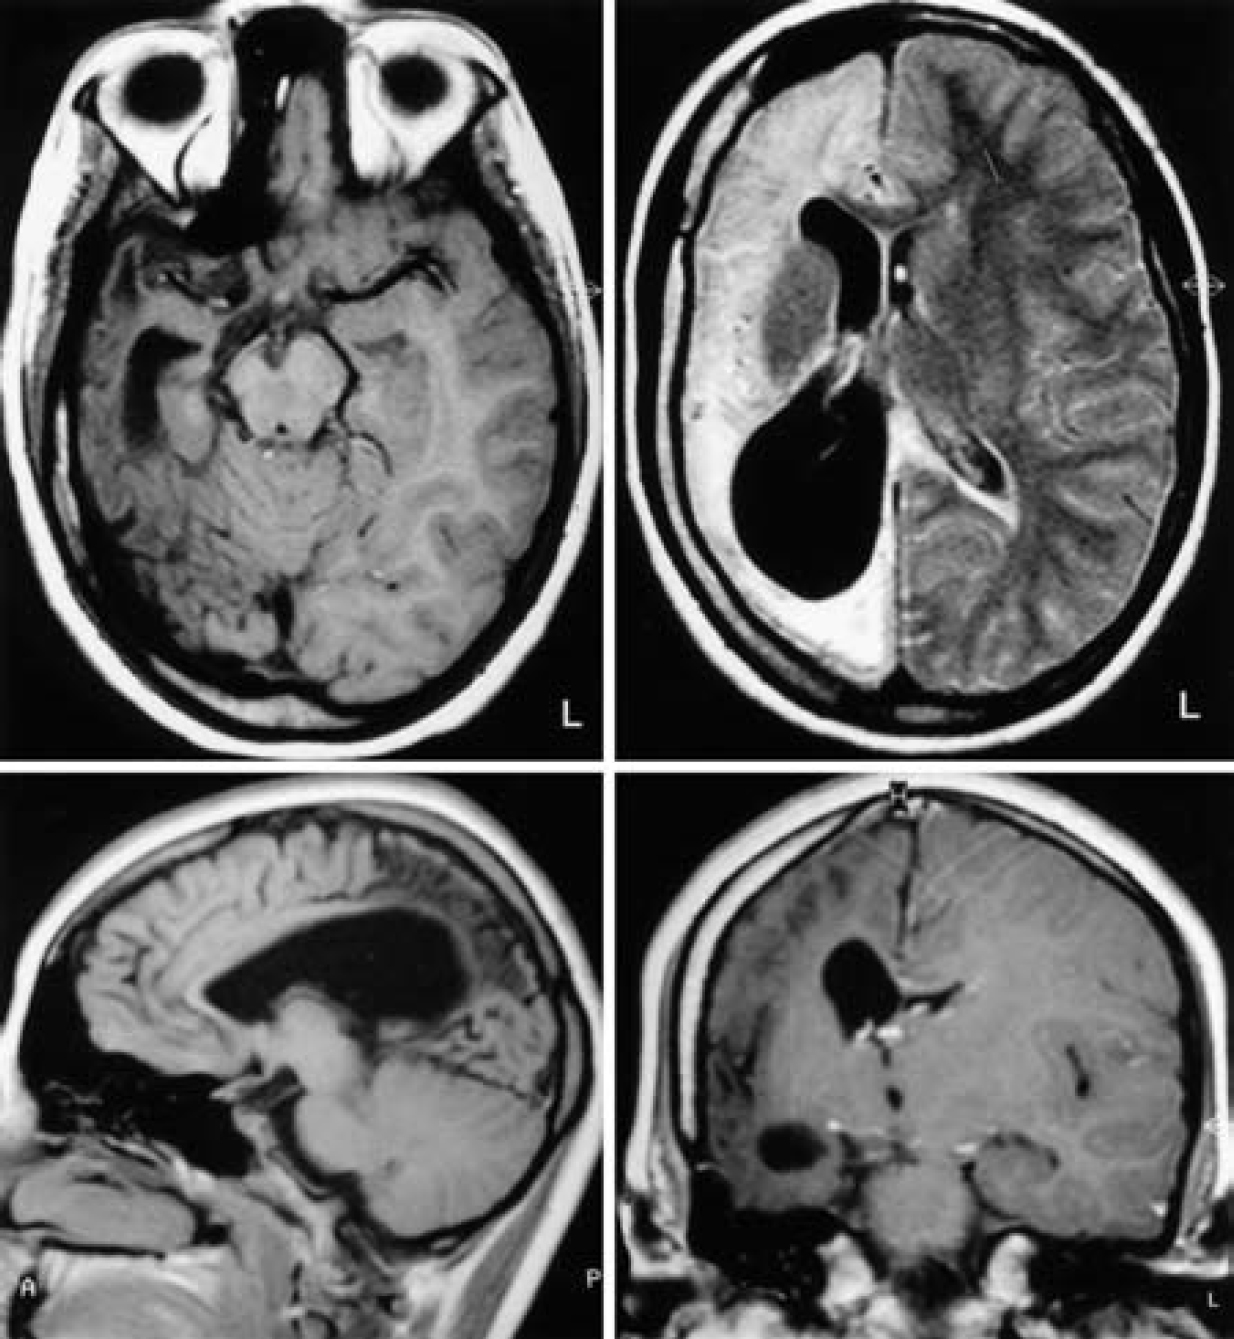 Figure 11.  Preoperative MR images obtained in a 16-year-old girl, demonstrating atrophy of the right hemisphere and an enlarged right lateral ventricle. (Images courtesy of AL Rhoton, Jr.)